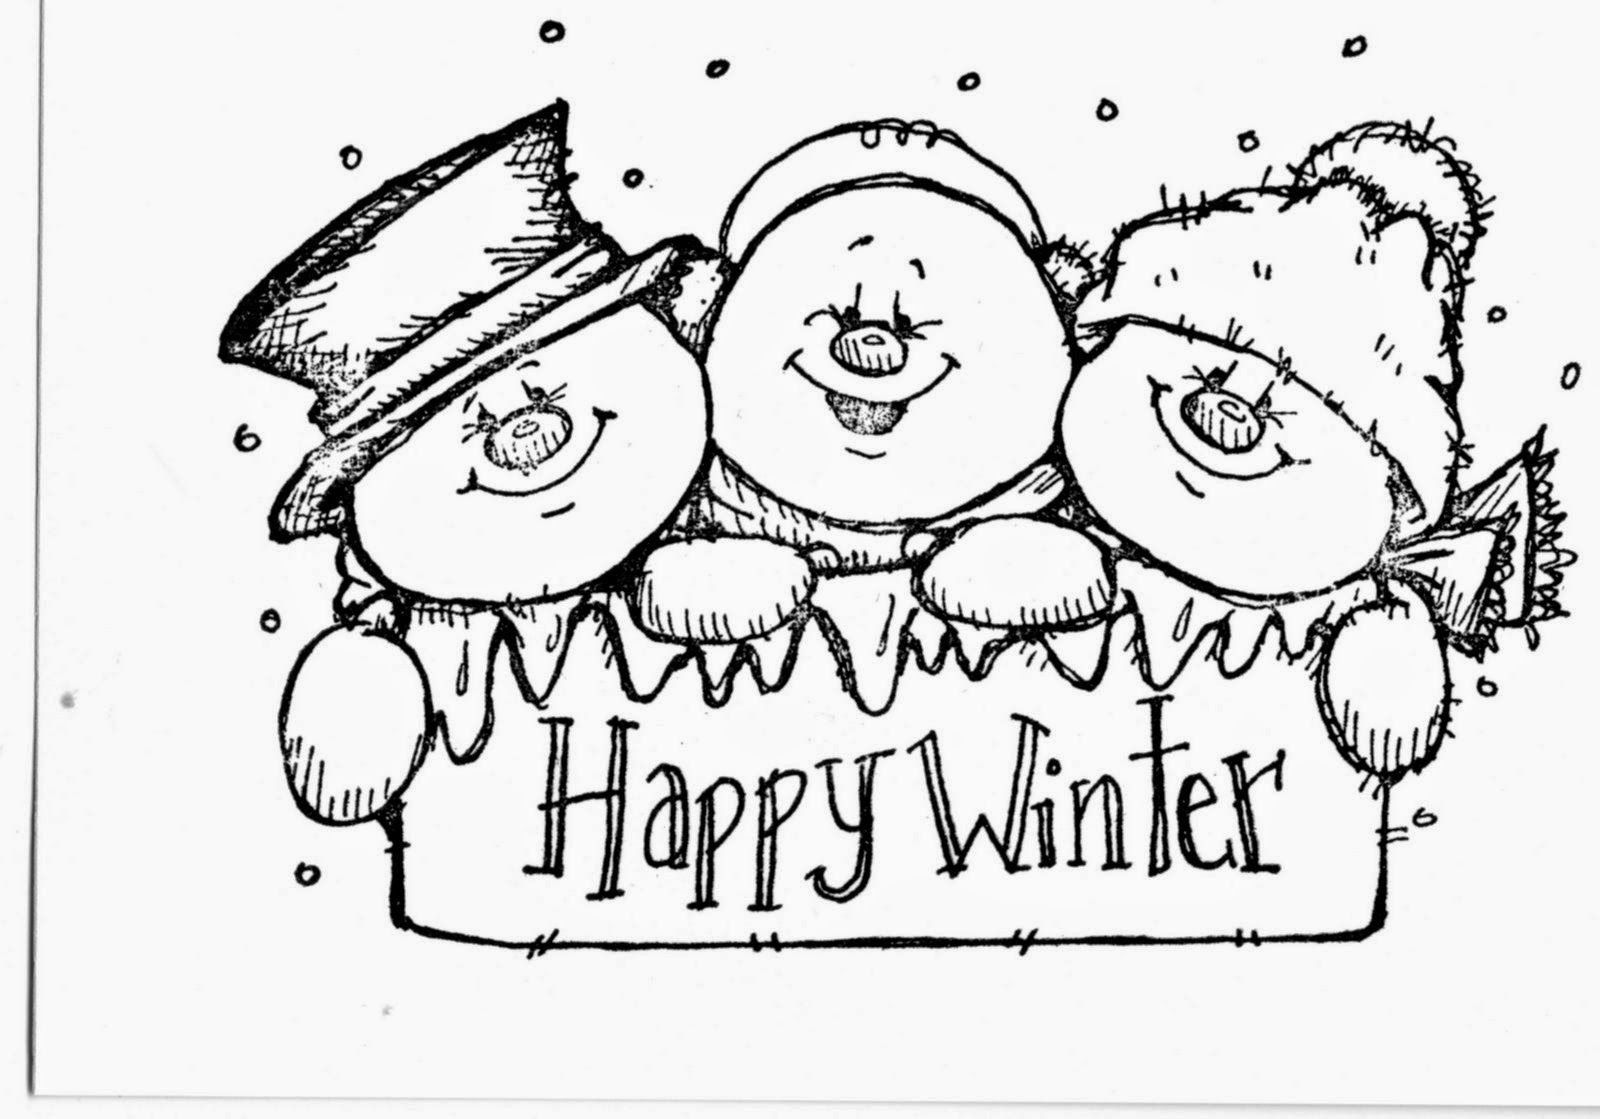 Free Printable Coloring Pages Christmas Cute Snowmen Free Printable Colorin Snowman Coloring Pages Christmas Coloring Sheets Printable Christmas Coloring Pages